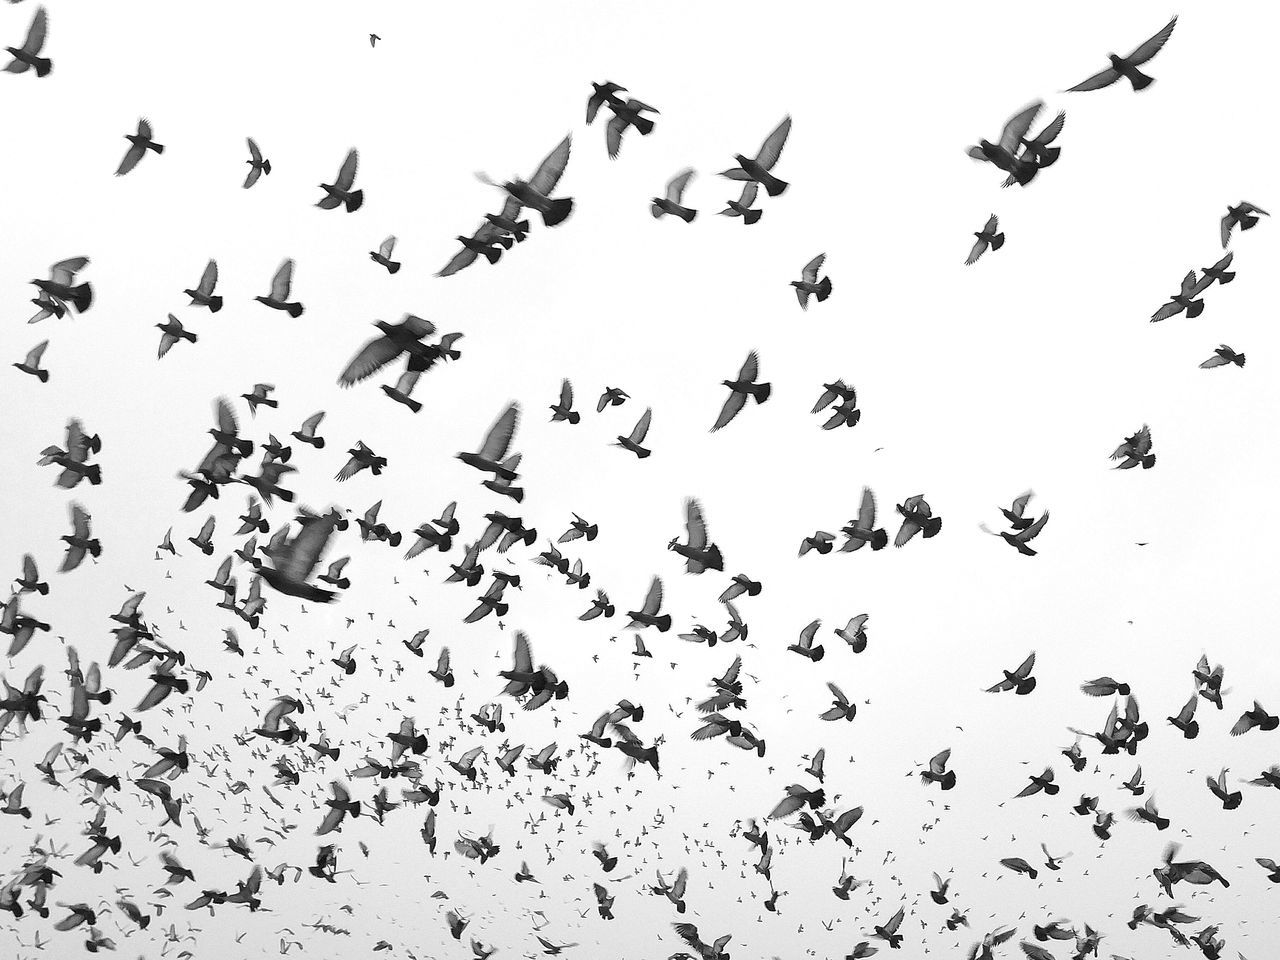 Flock Of Birds Bird Animals In The Wild Animal Themes Flying Day Outdoors No People Nature Eyeemphotography Oneplusphotography EyeEm Gallery India Snapseed Tranquility Tranquil Scene Oneplus2 Blackandwhite Beach Life EyeEm BlackandWhite Edited